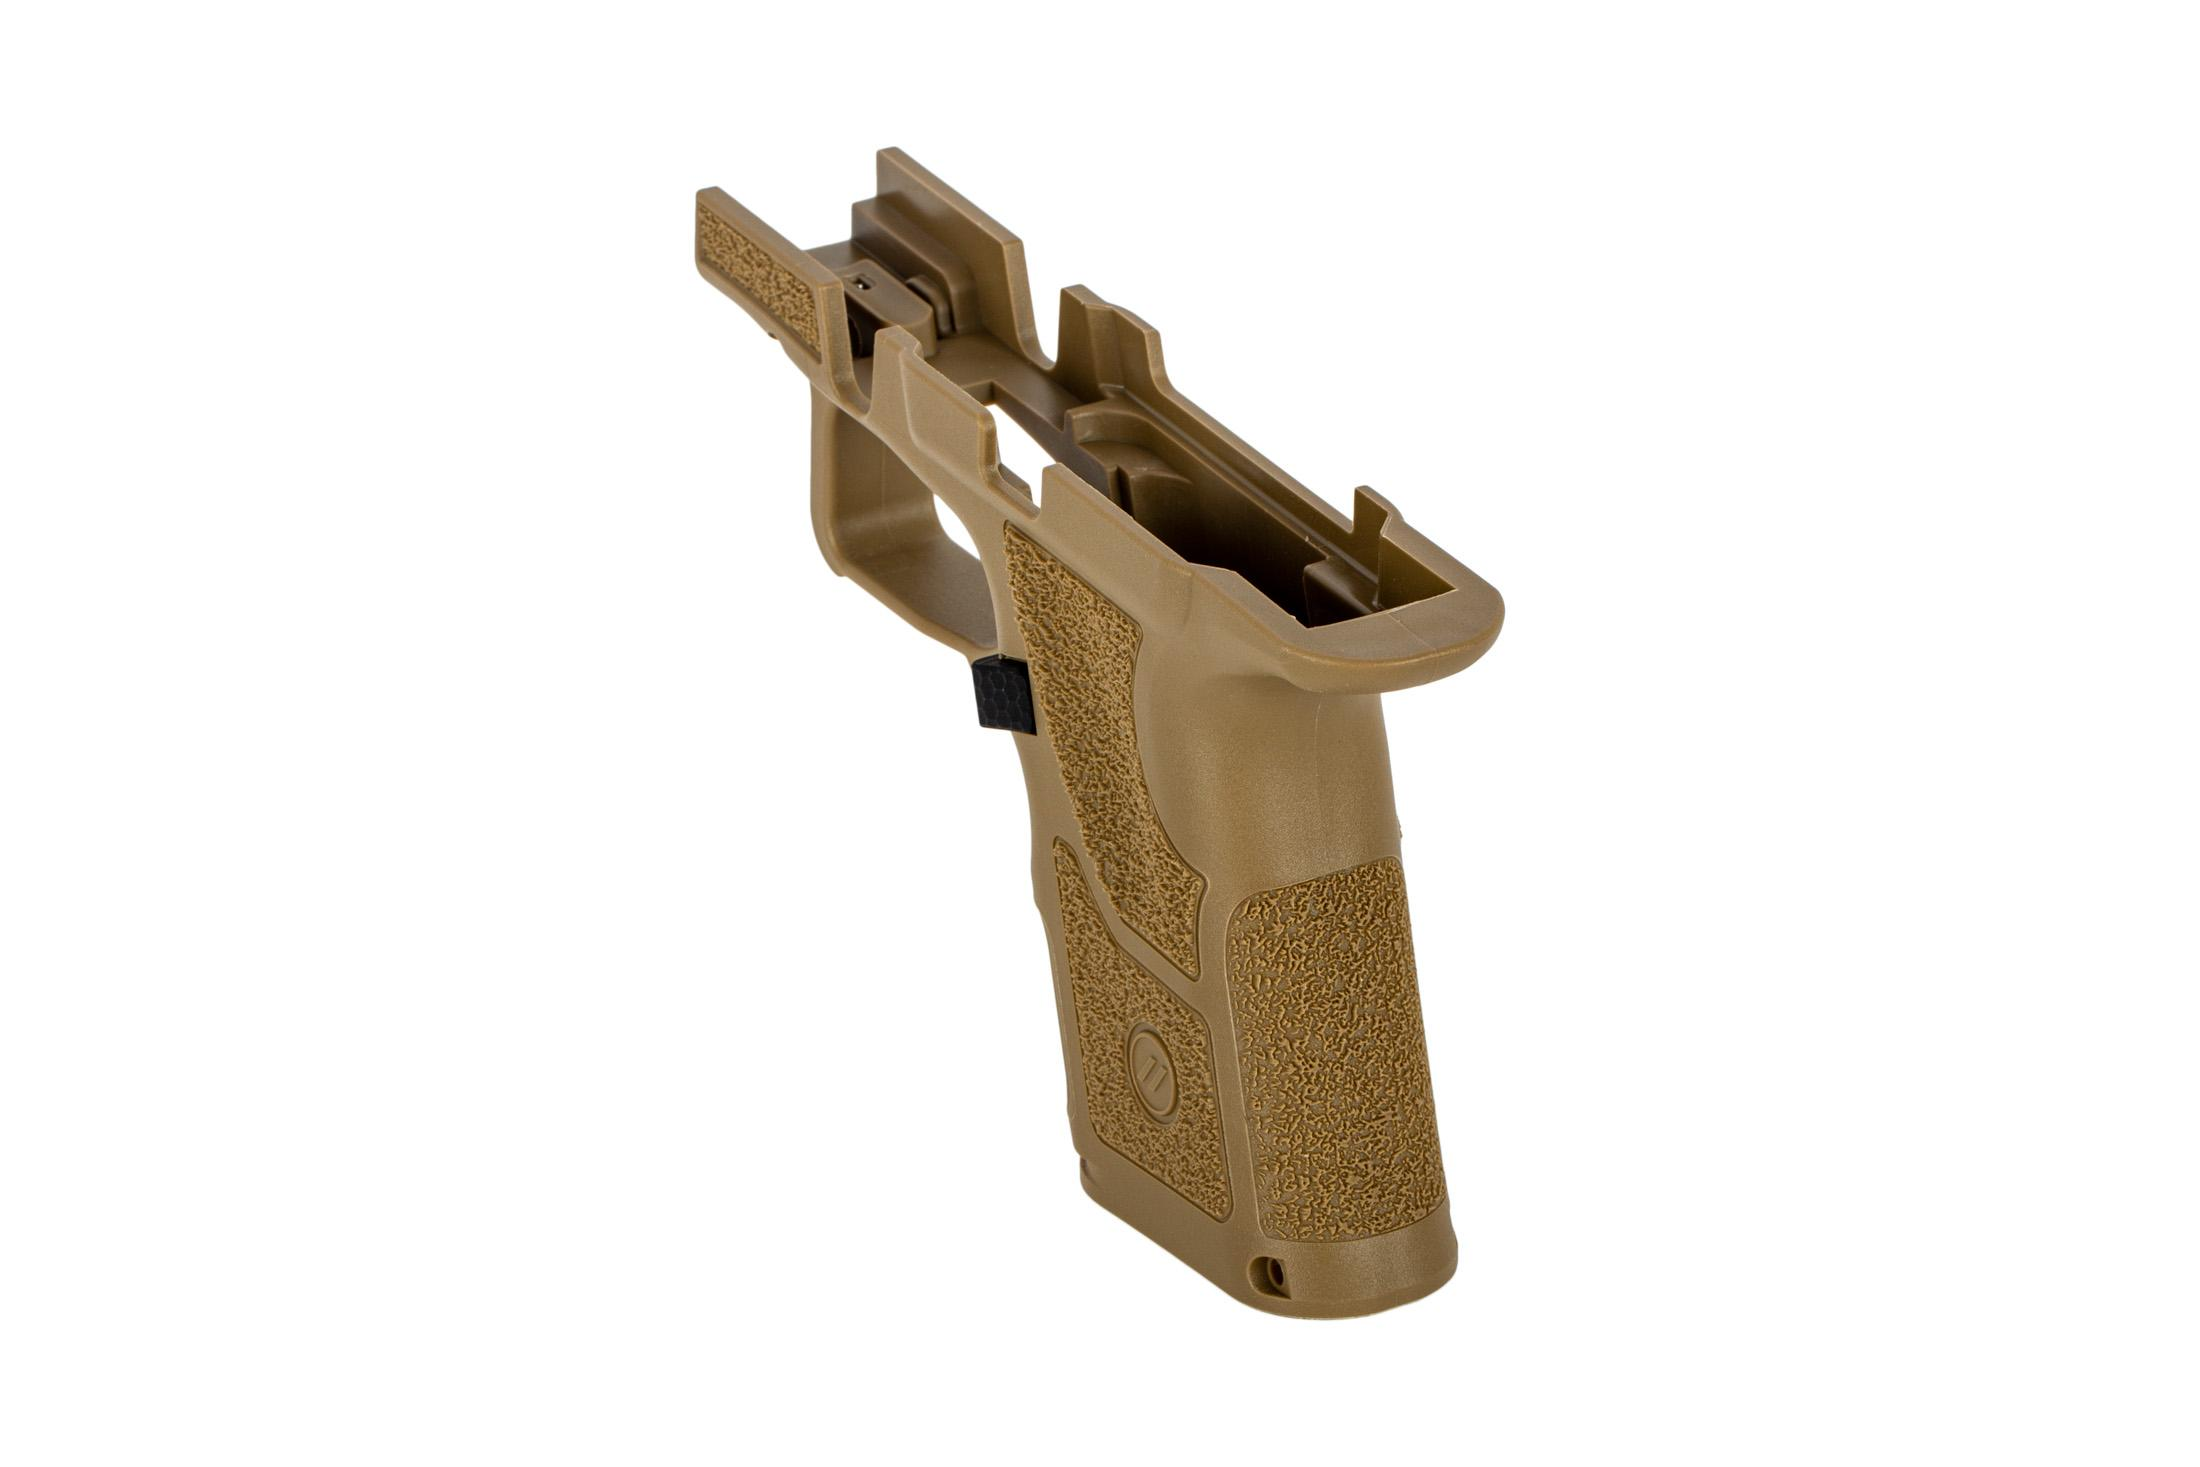 Zev Technologies Compact OZ9c pistol frame is a non serialized part